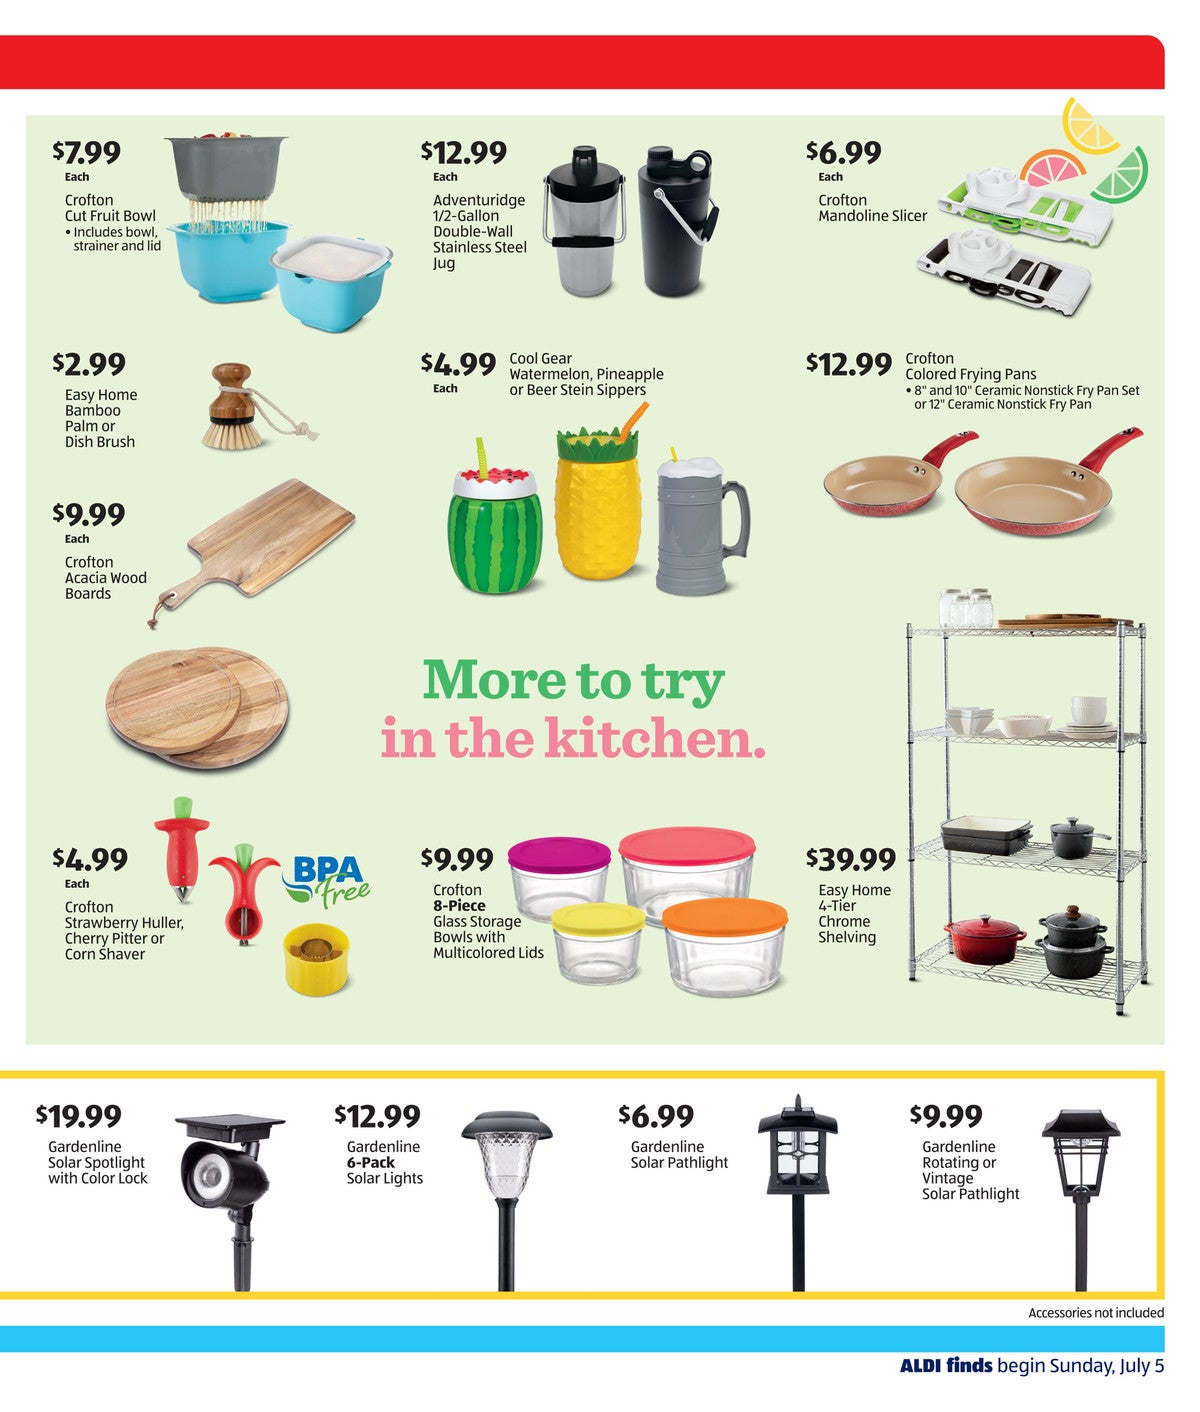 aldi ad preview july 7-14 page 3 of 4